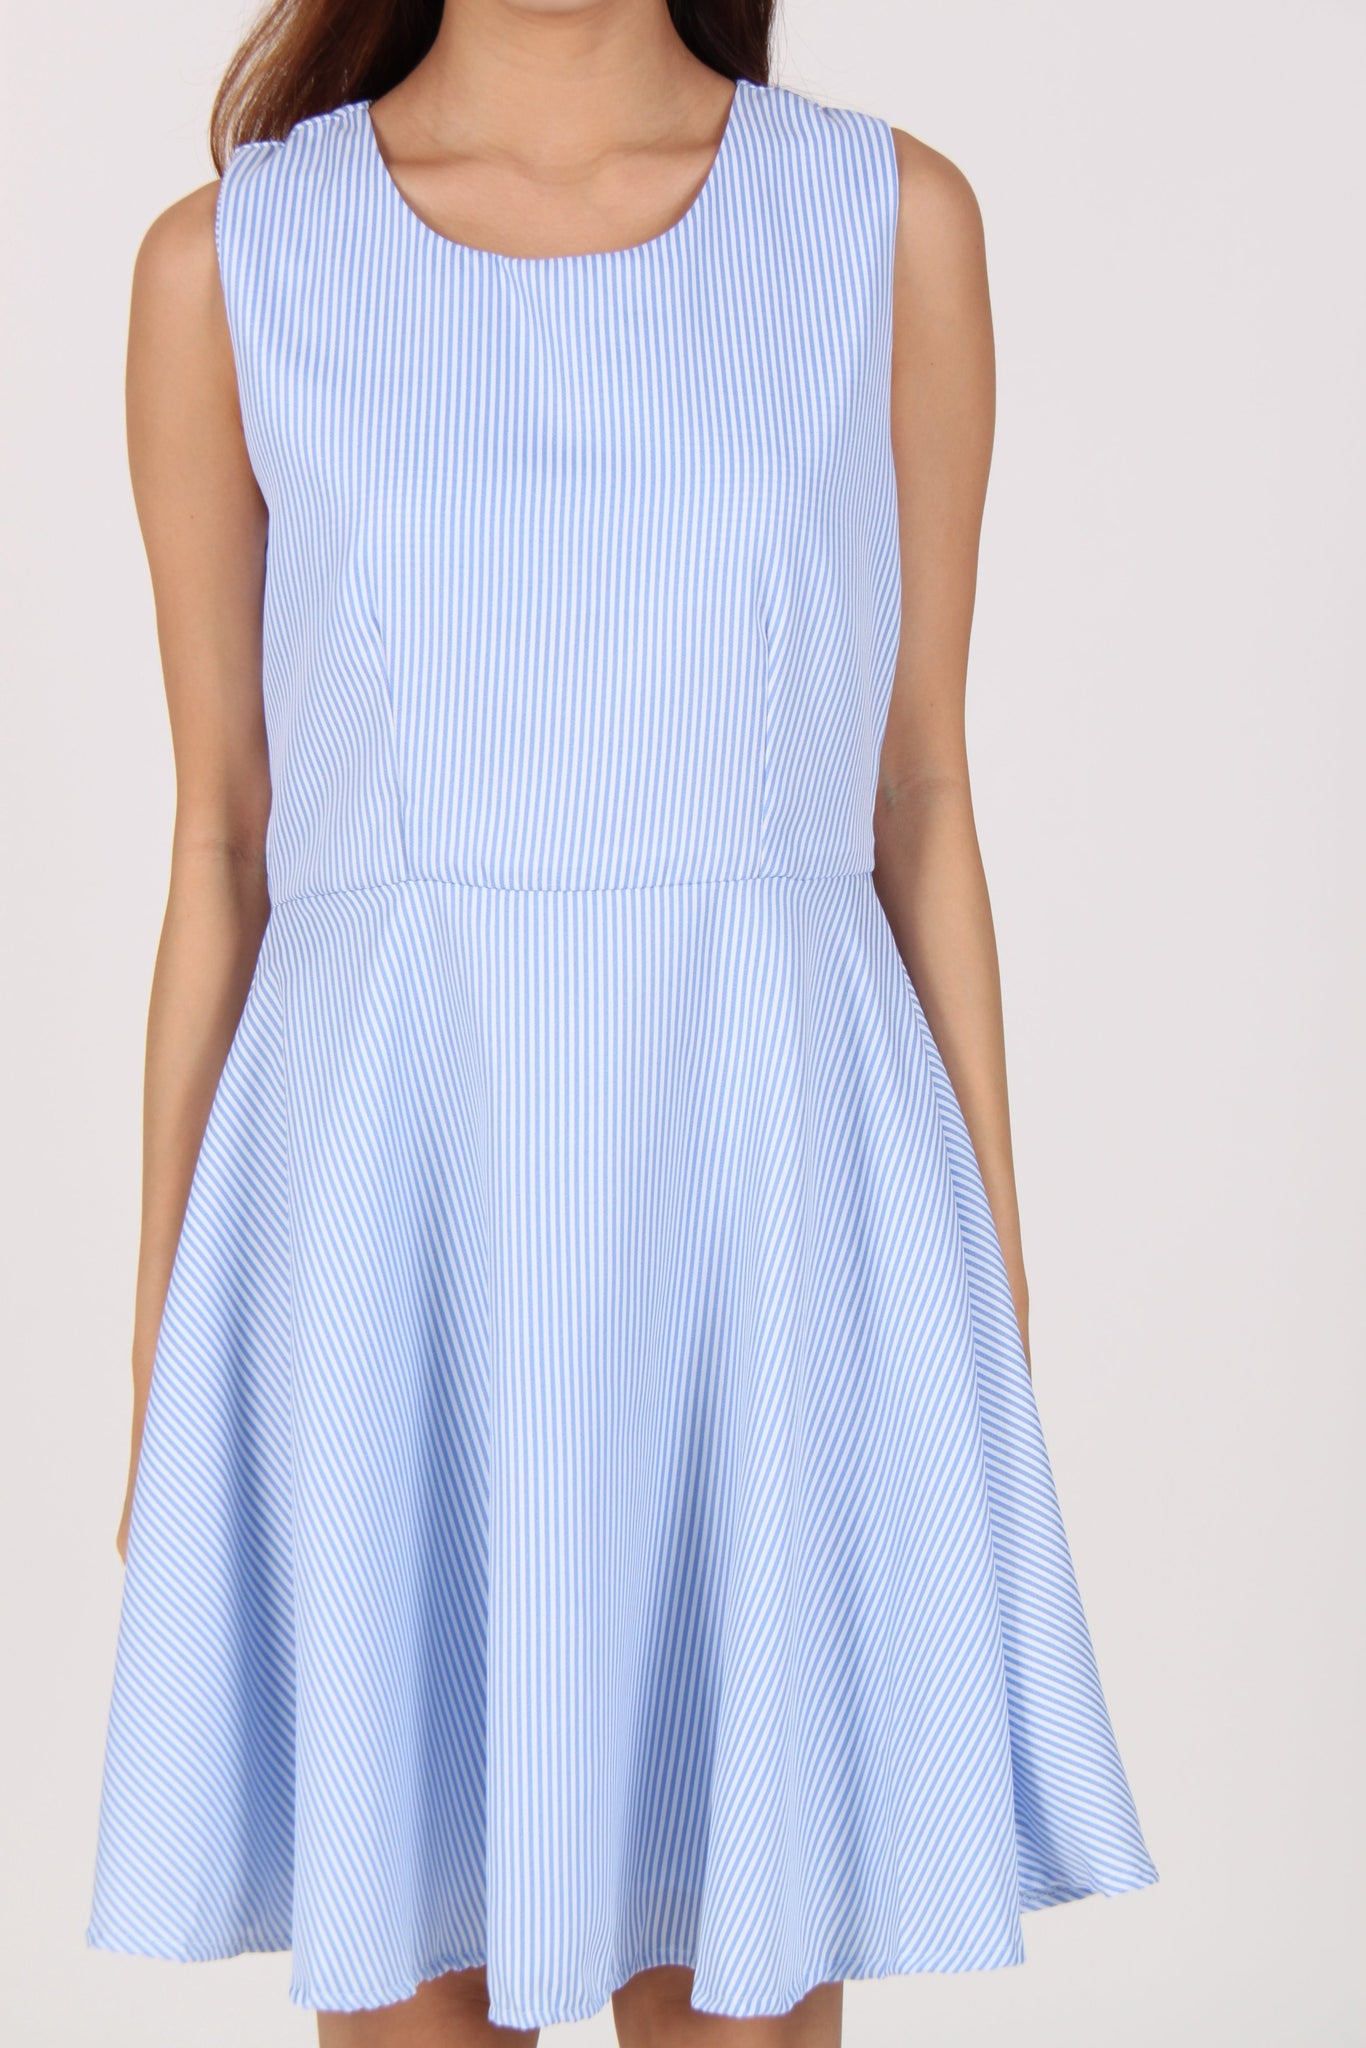 Sleeveless Stripes Skater Dress in Light Blue